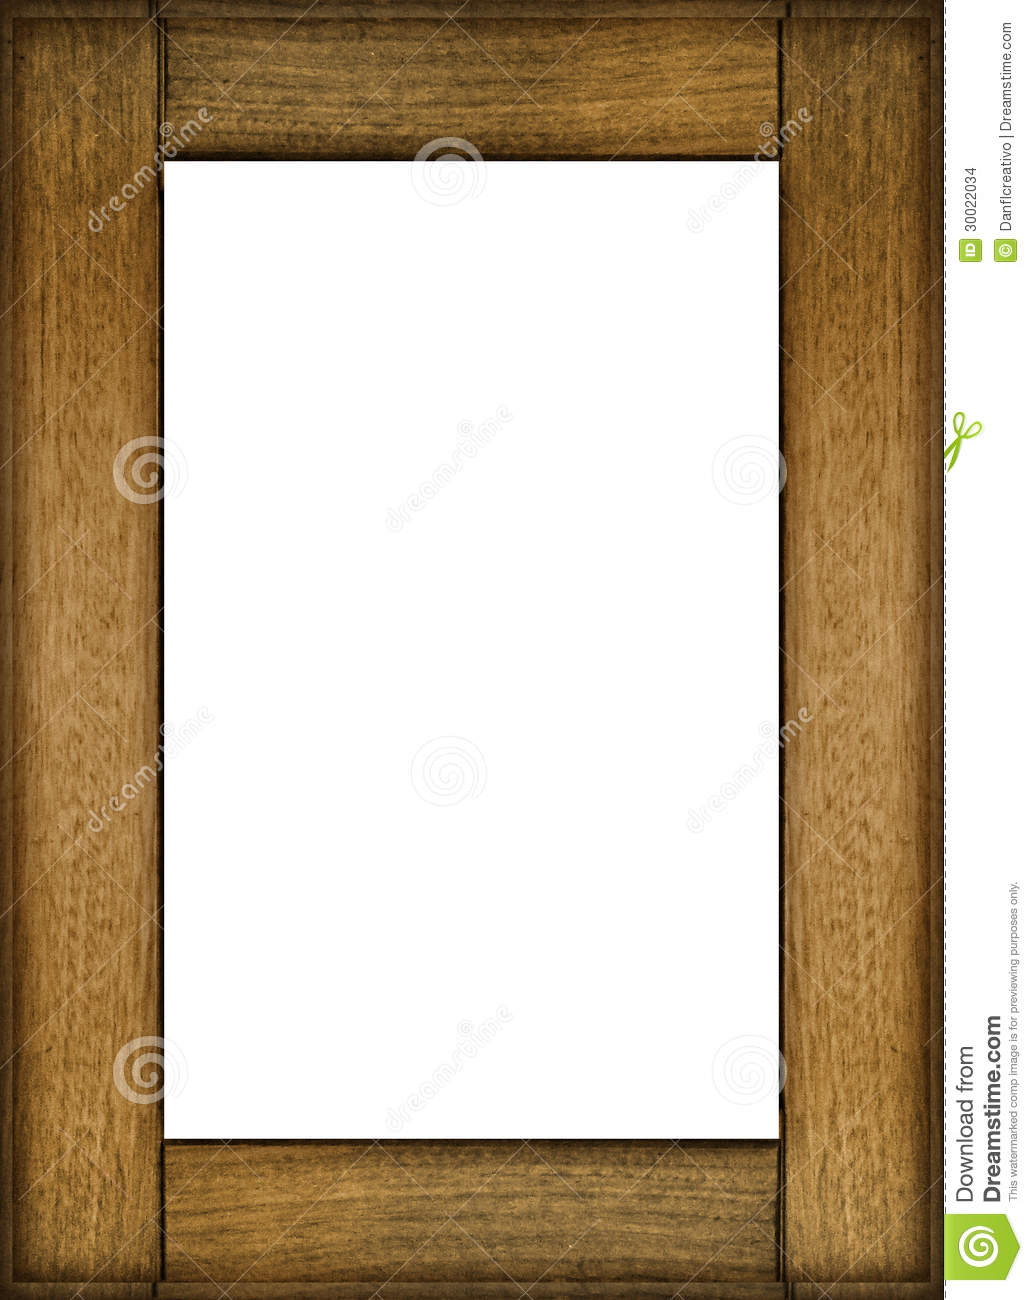 portrait photo frame mockup